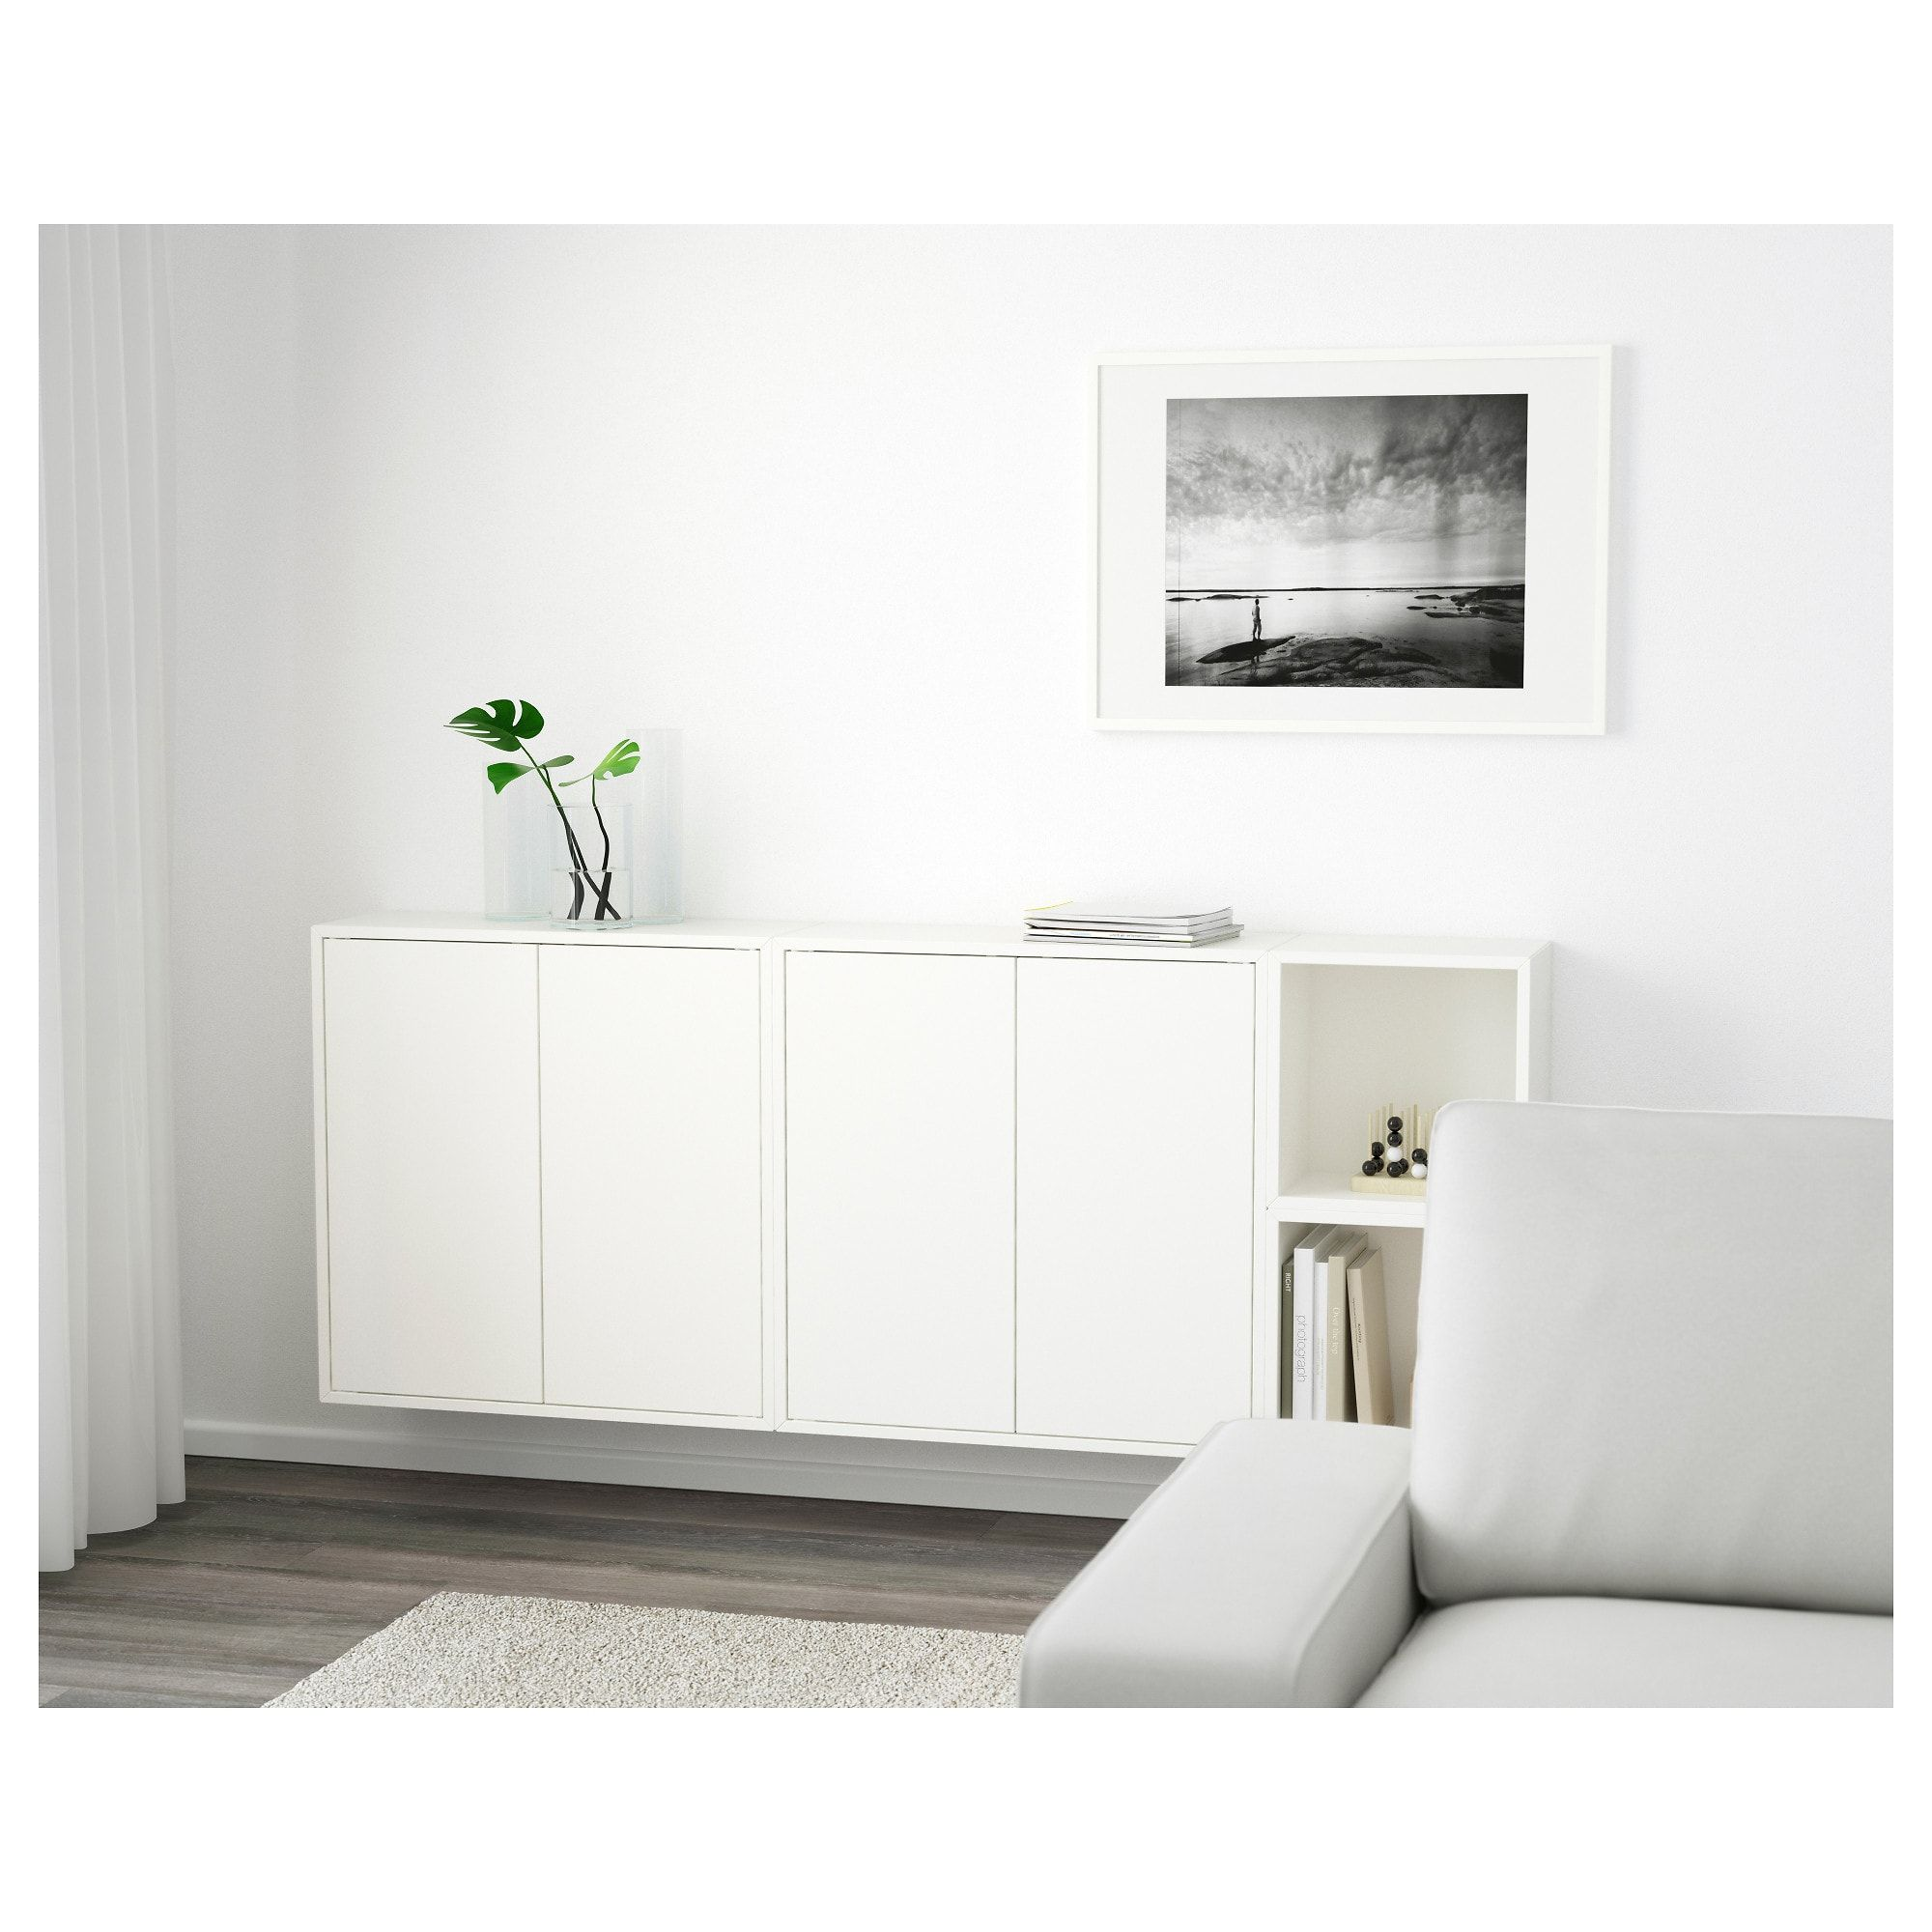 Eket Wall Mounted Cabinet Combination White Length 27 Find It Here Ikea Ikea Wall Cabinets Ikea Wall Storage Wall Mounted Cabinet